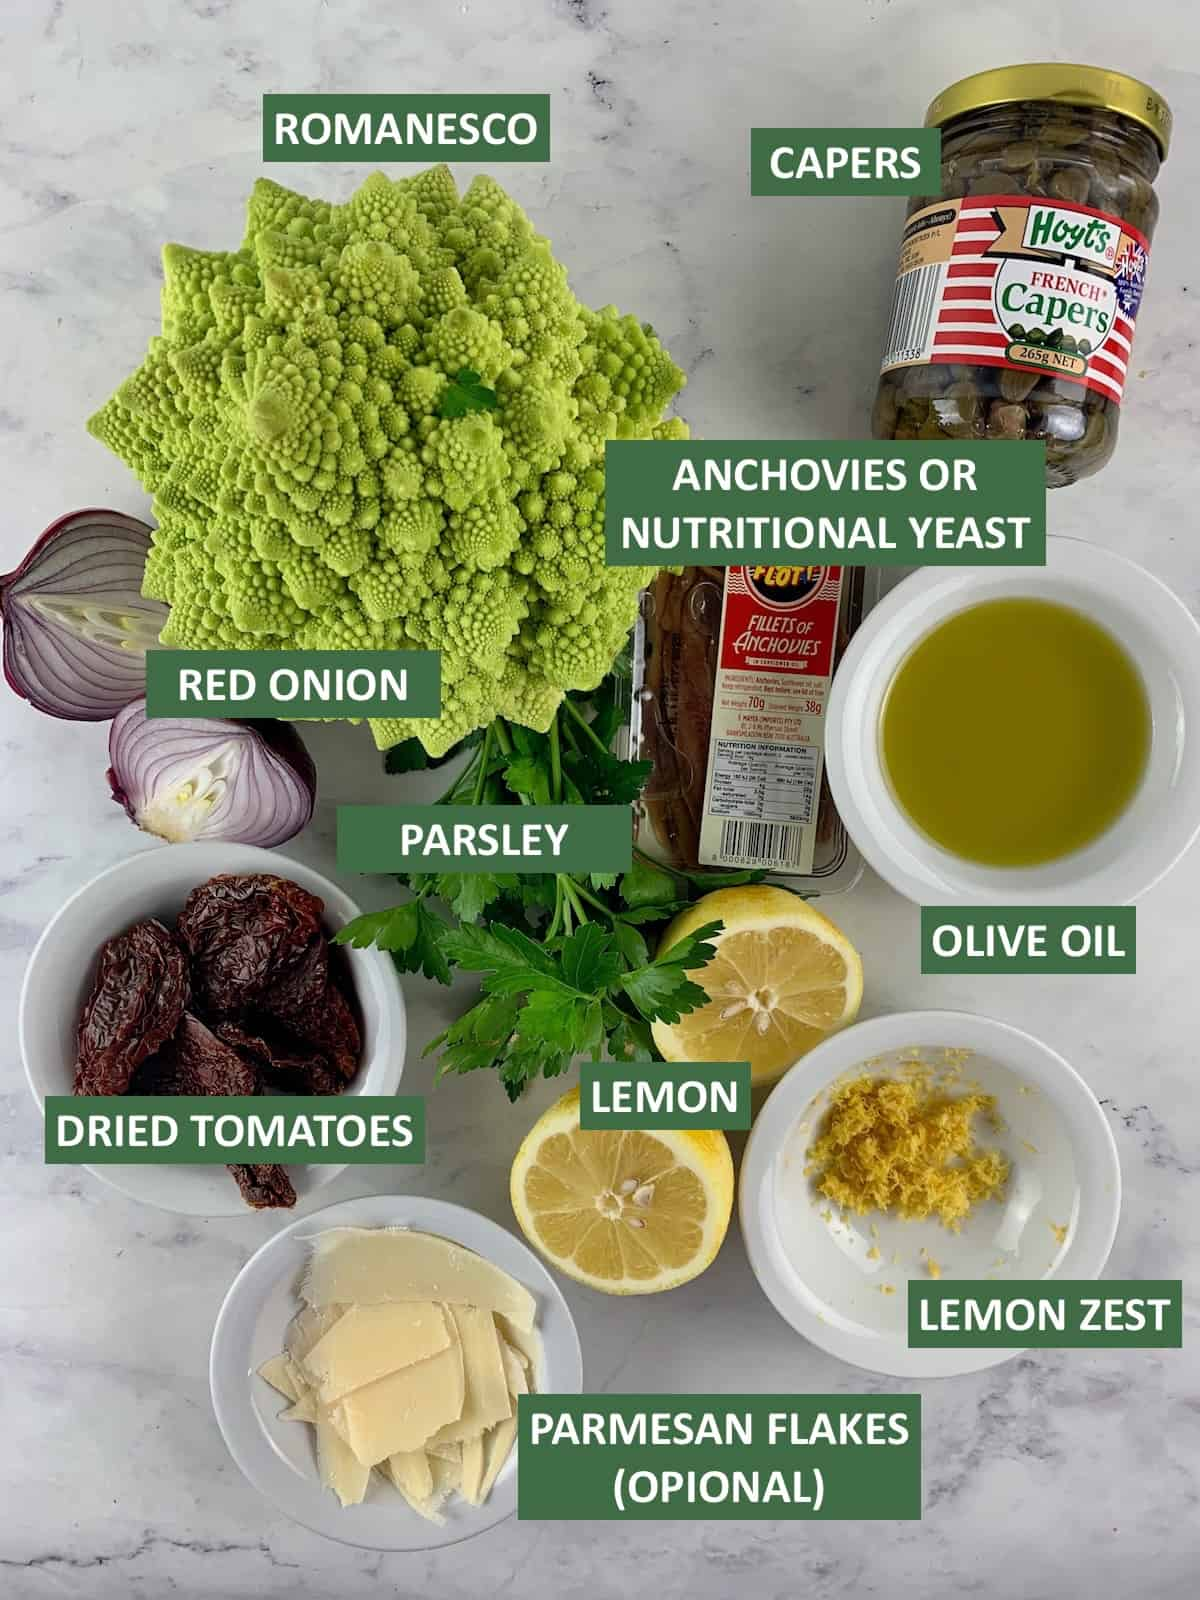 INGREDIENTS NEEDED TO MAKE ROMANESCO SALAD WITH TEXT